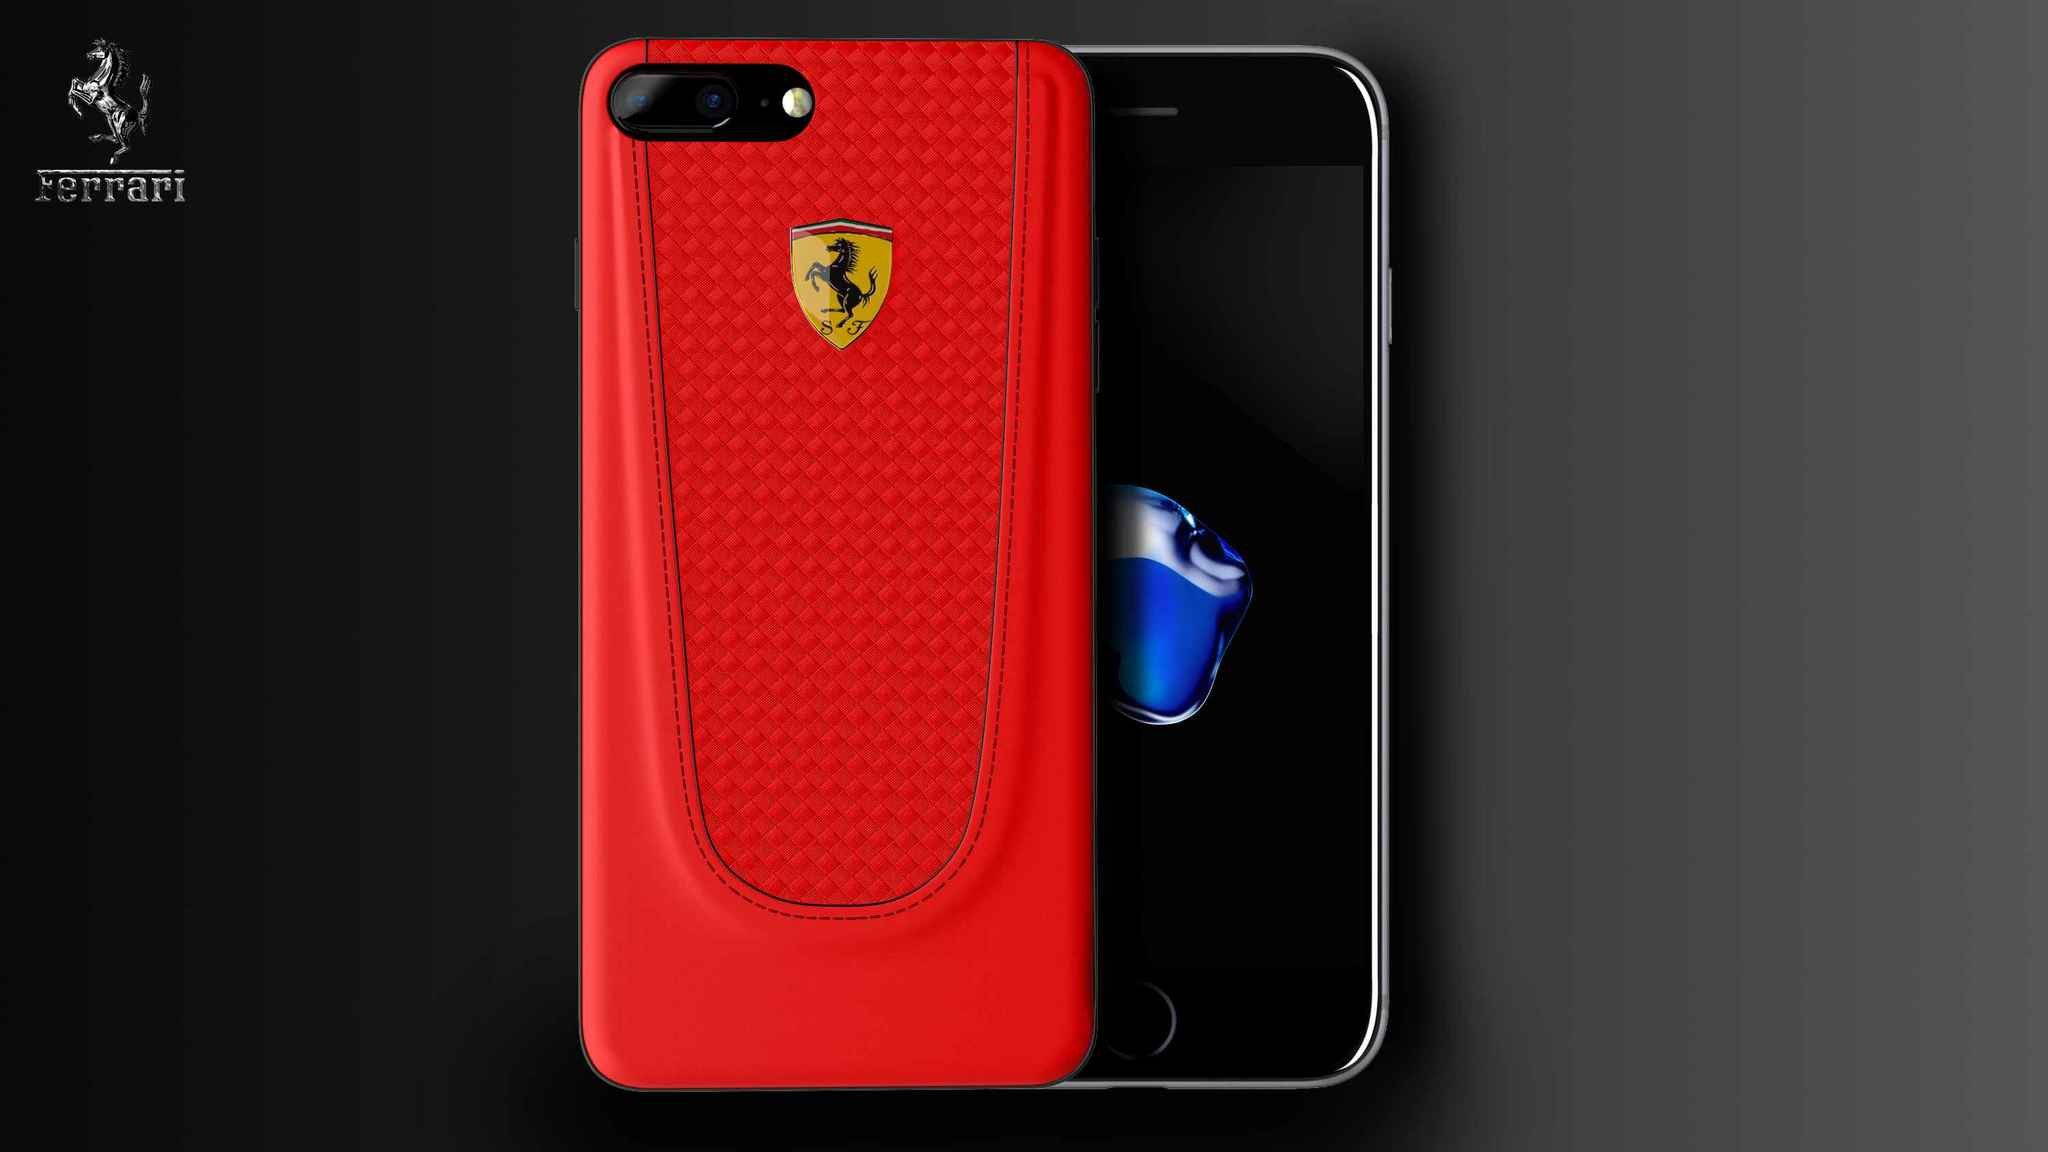 best loved 30b47 784ce Ferrari ® Apple iPhone 7 Plus Official California T Series Double Stitched  Dual-Material PU Leather Back Cover